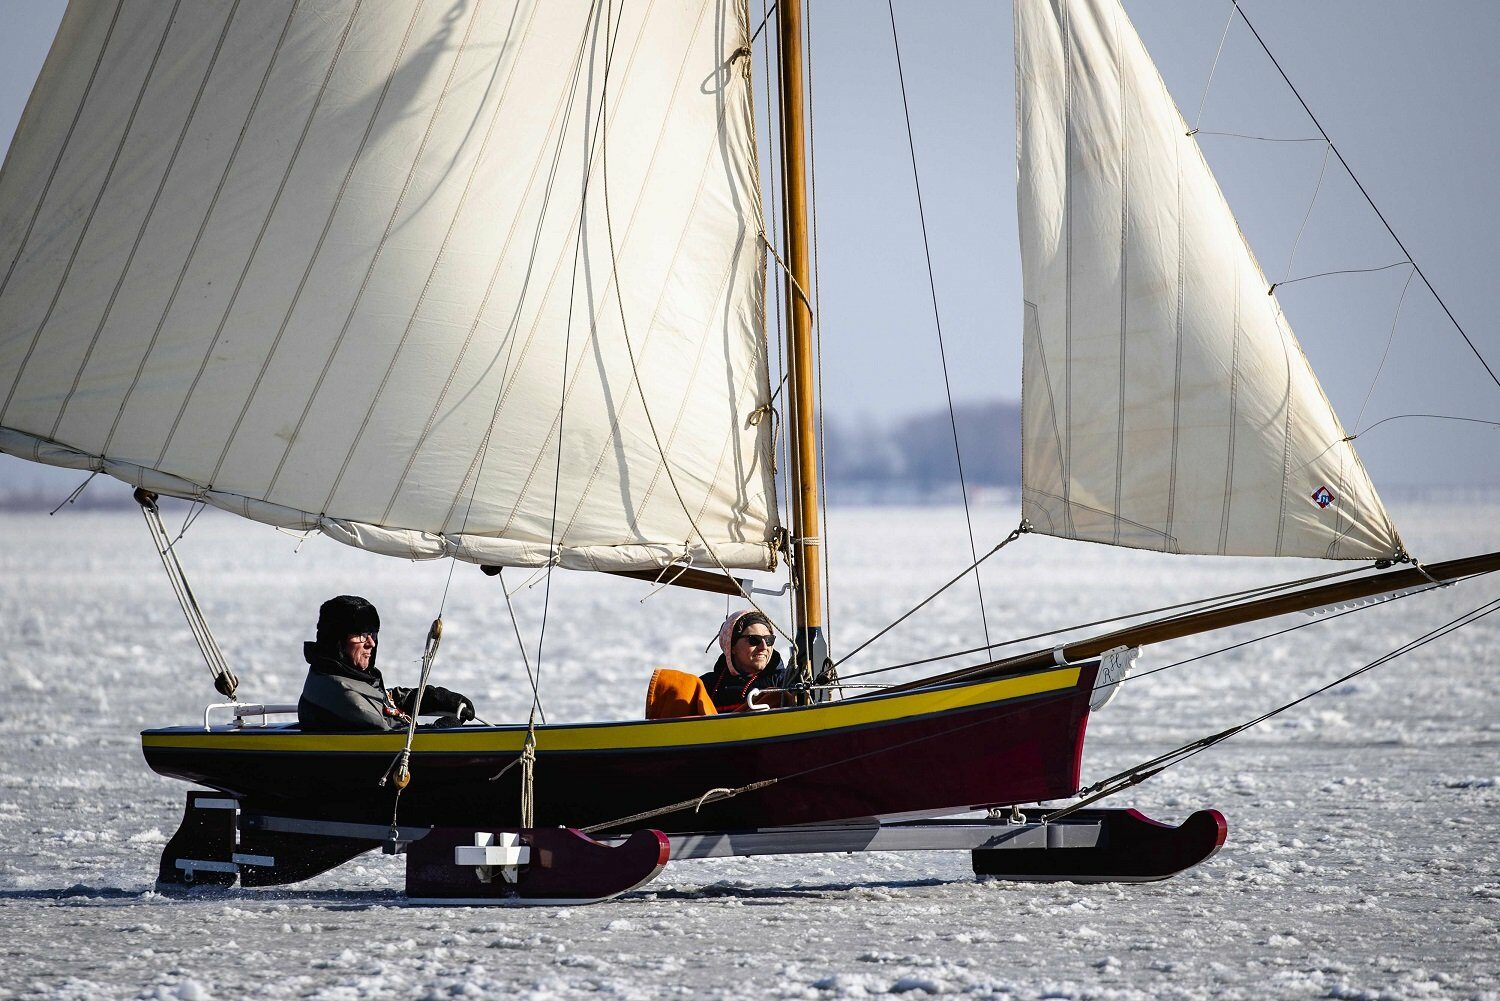 People are ice sailing on the Gouwzee in the Netherlands, 12 February 2021.